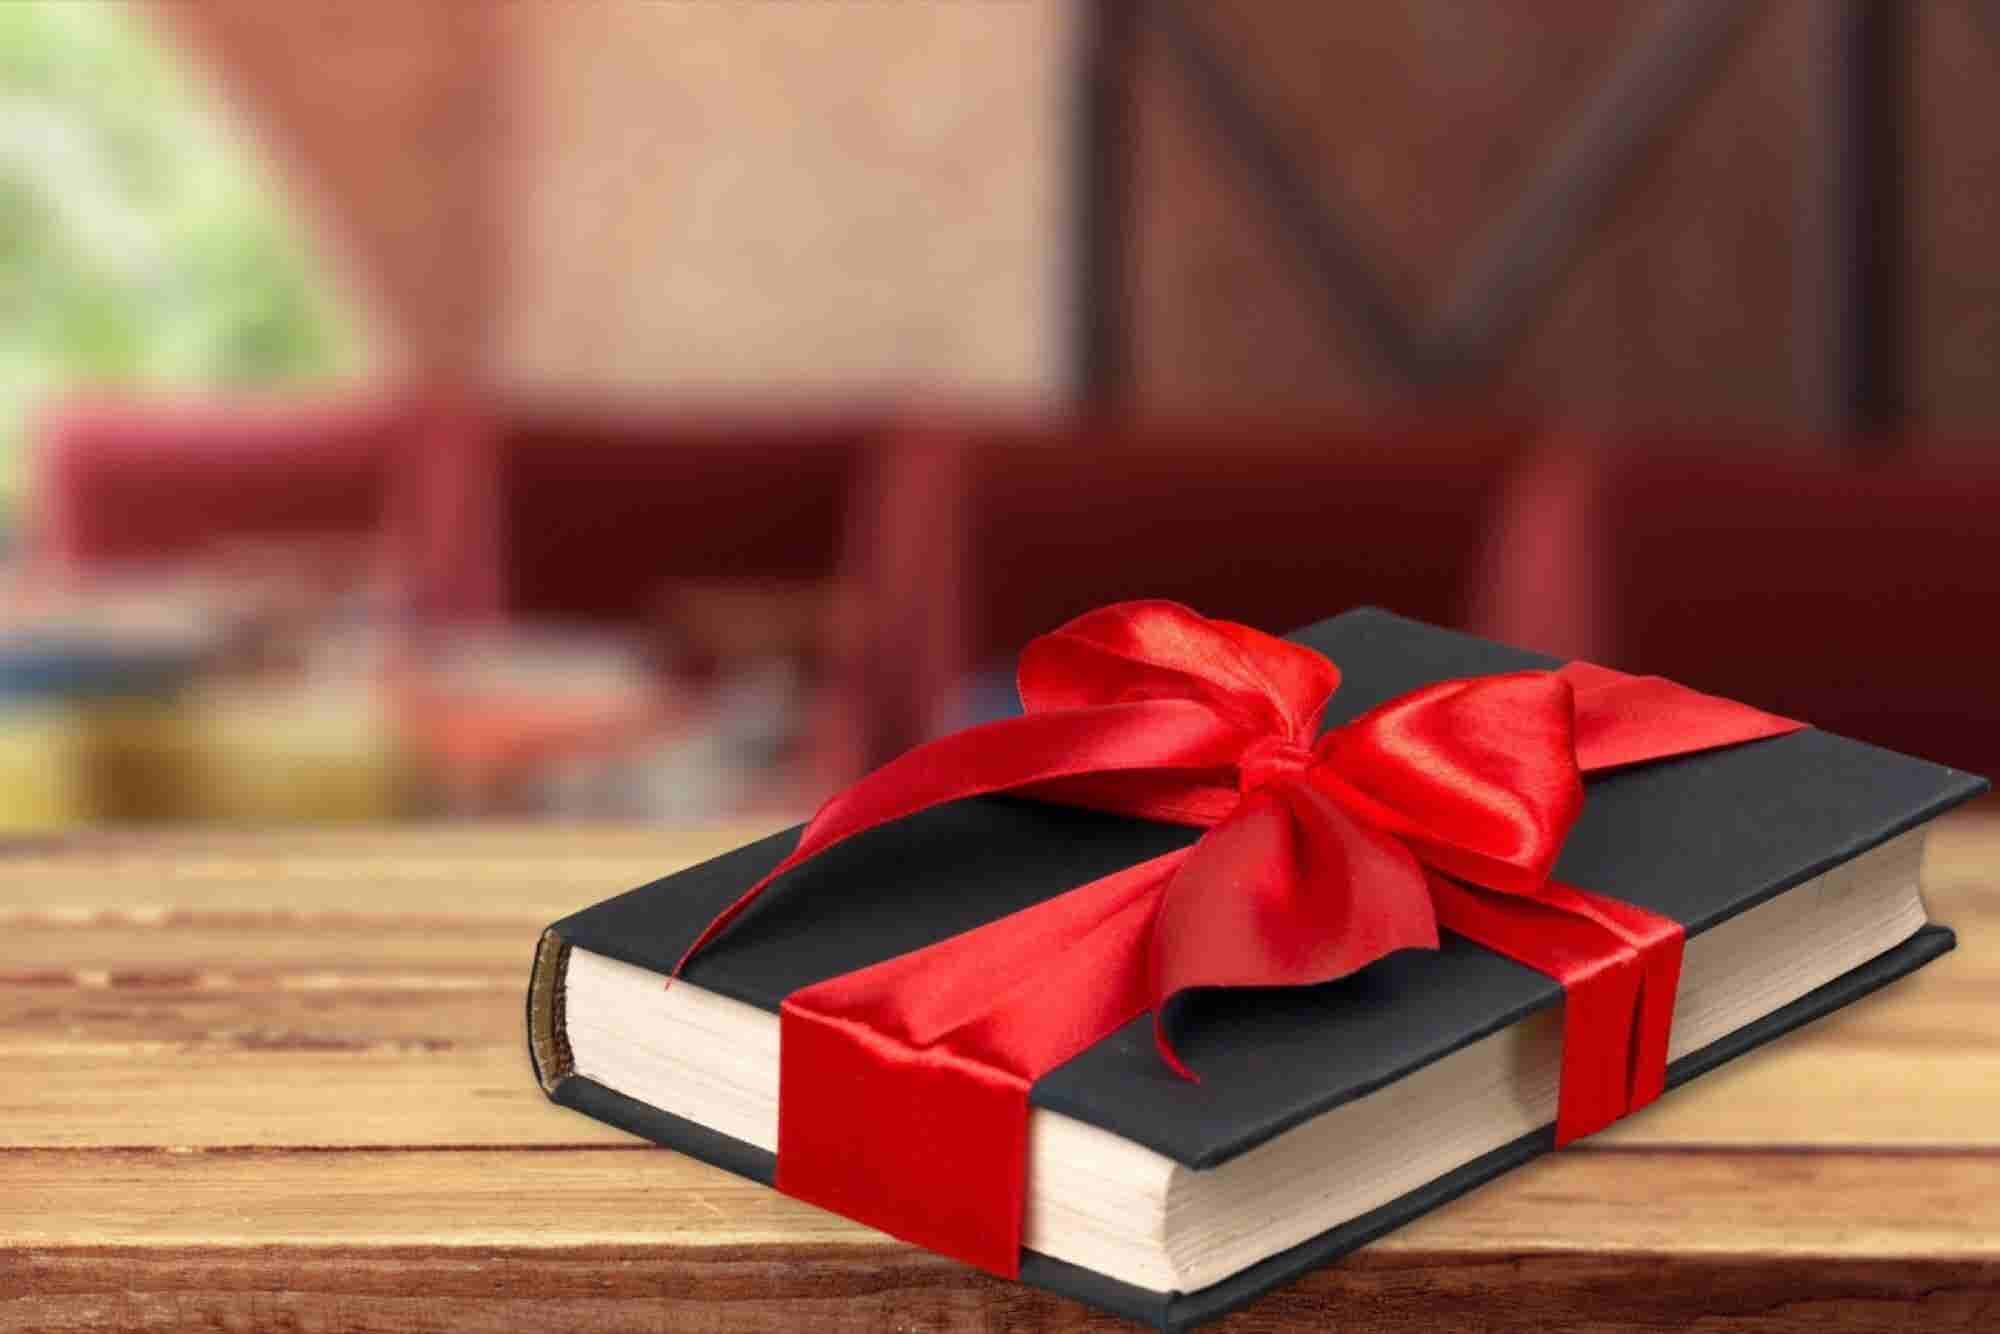 Do's and Don'ts for Client Gifts Over the Holidays